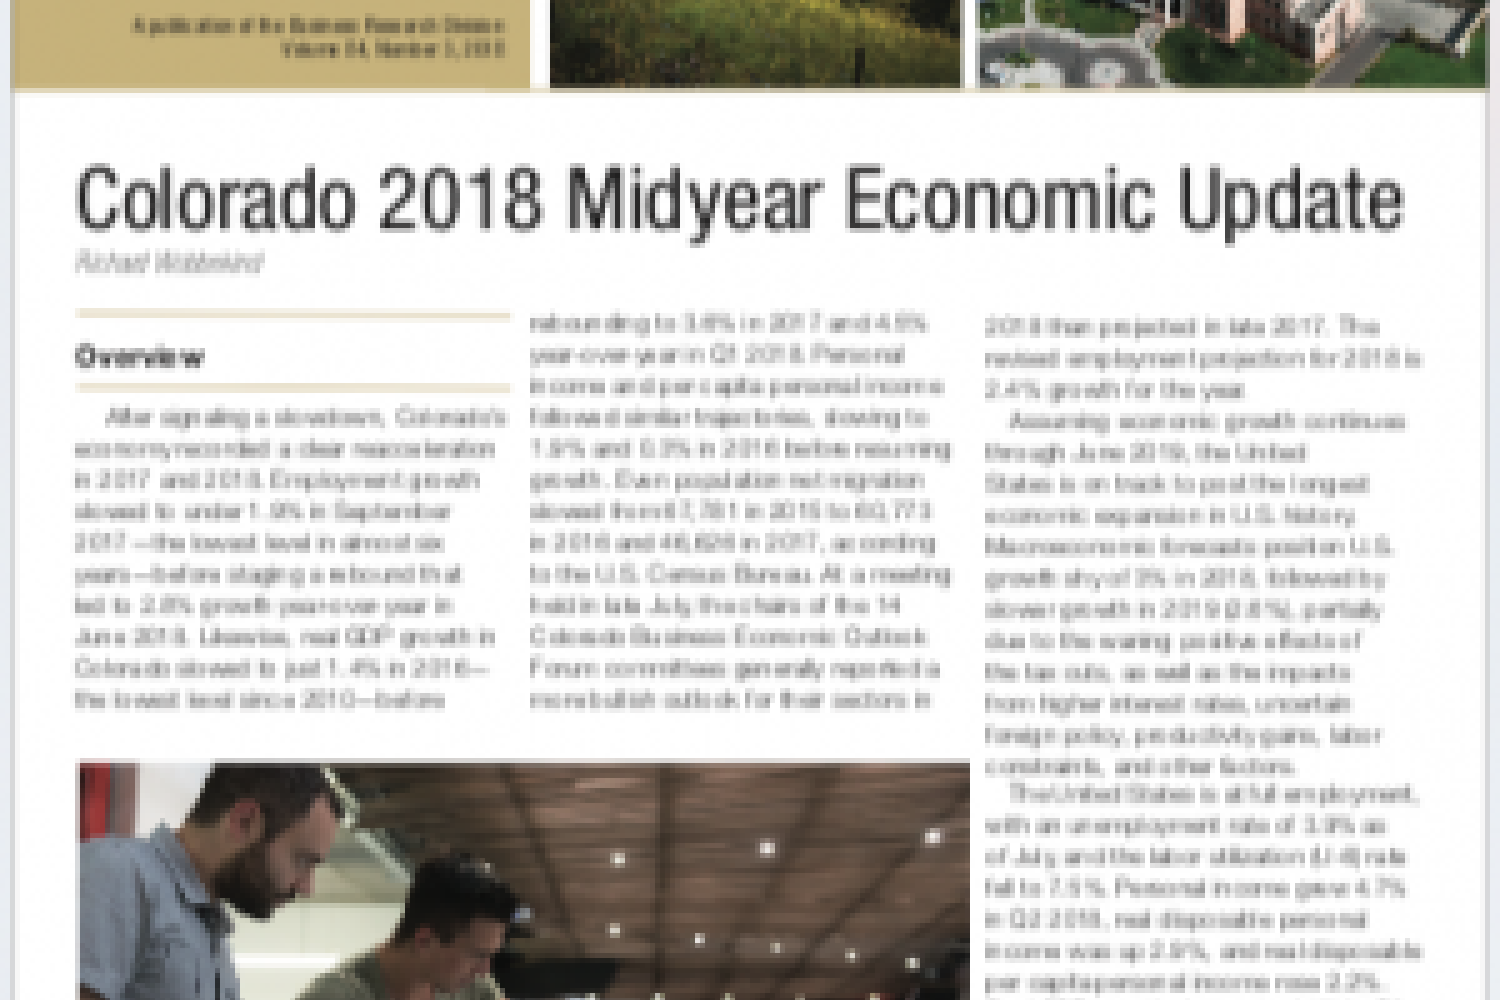 BRD Mid Year Report